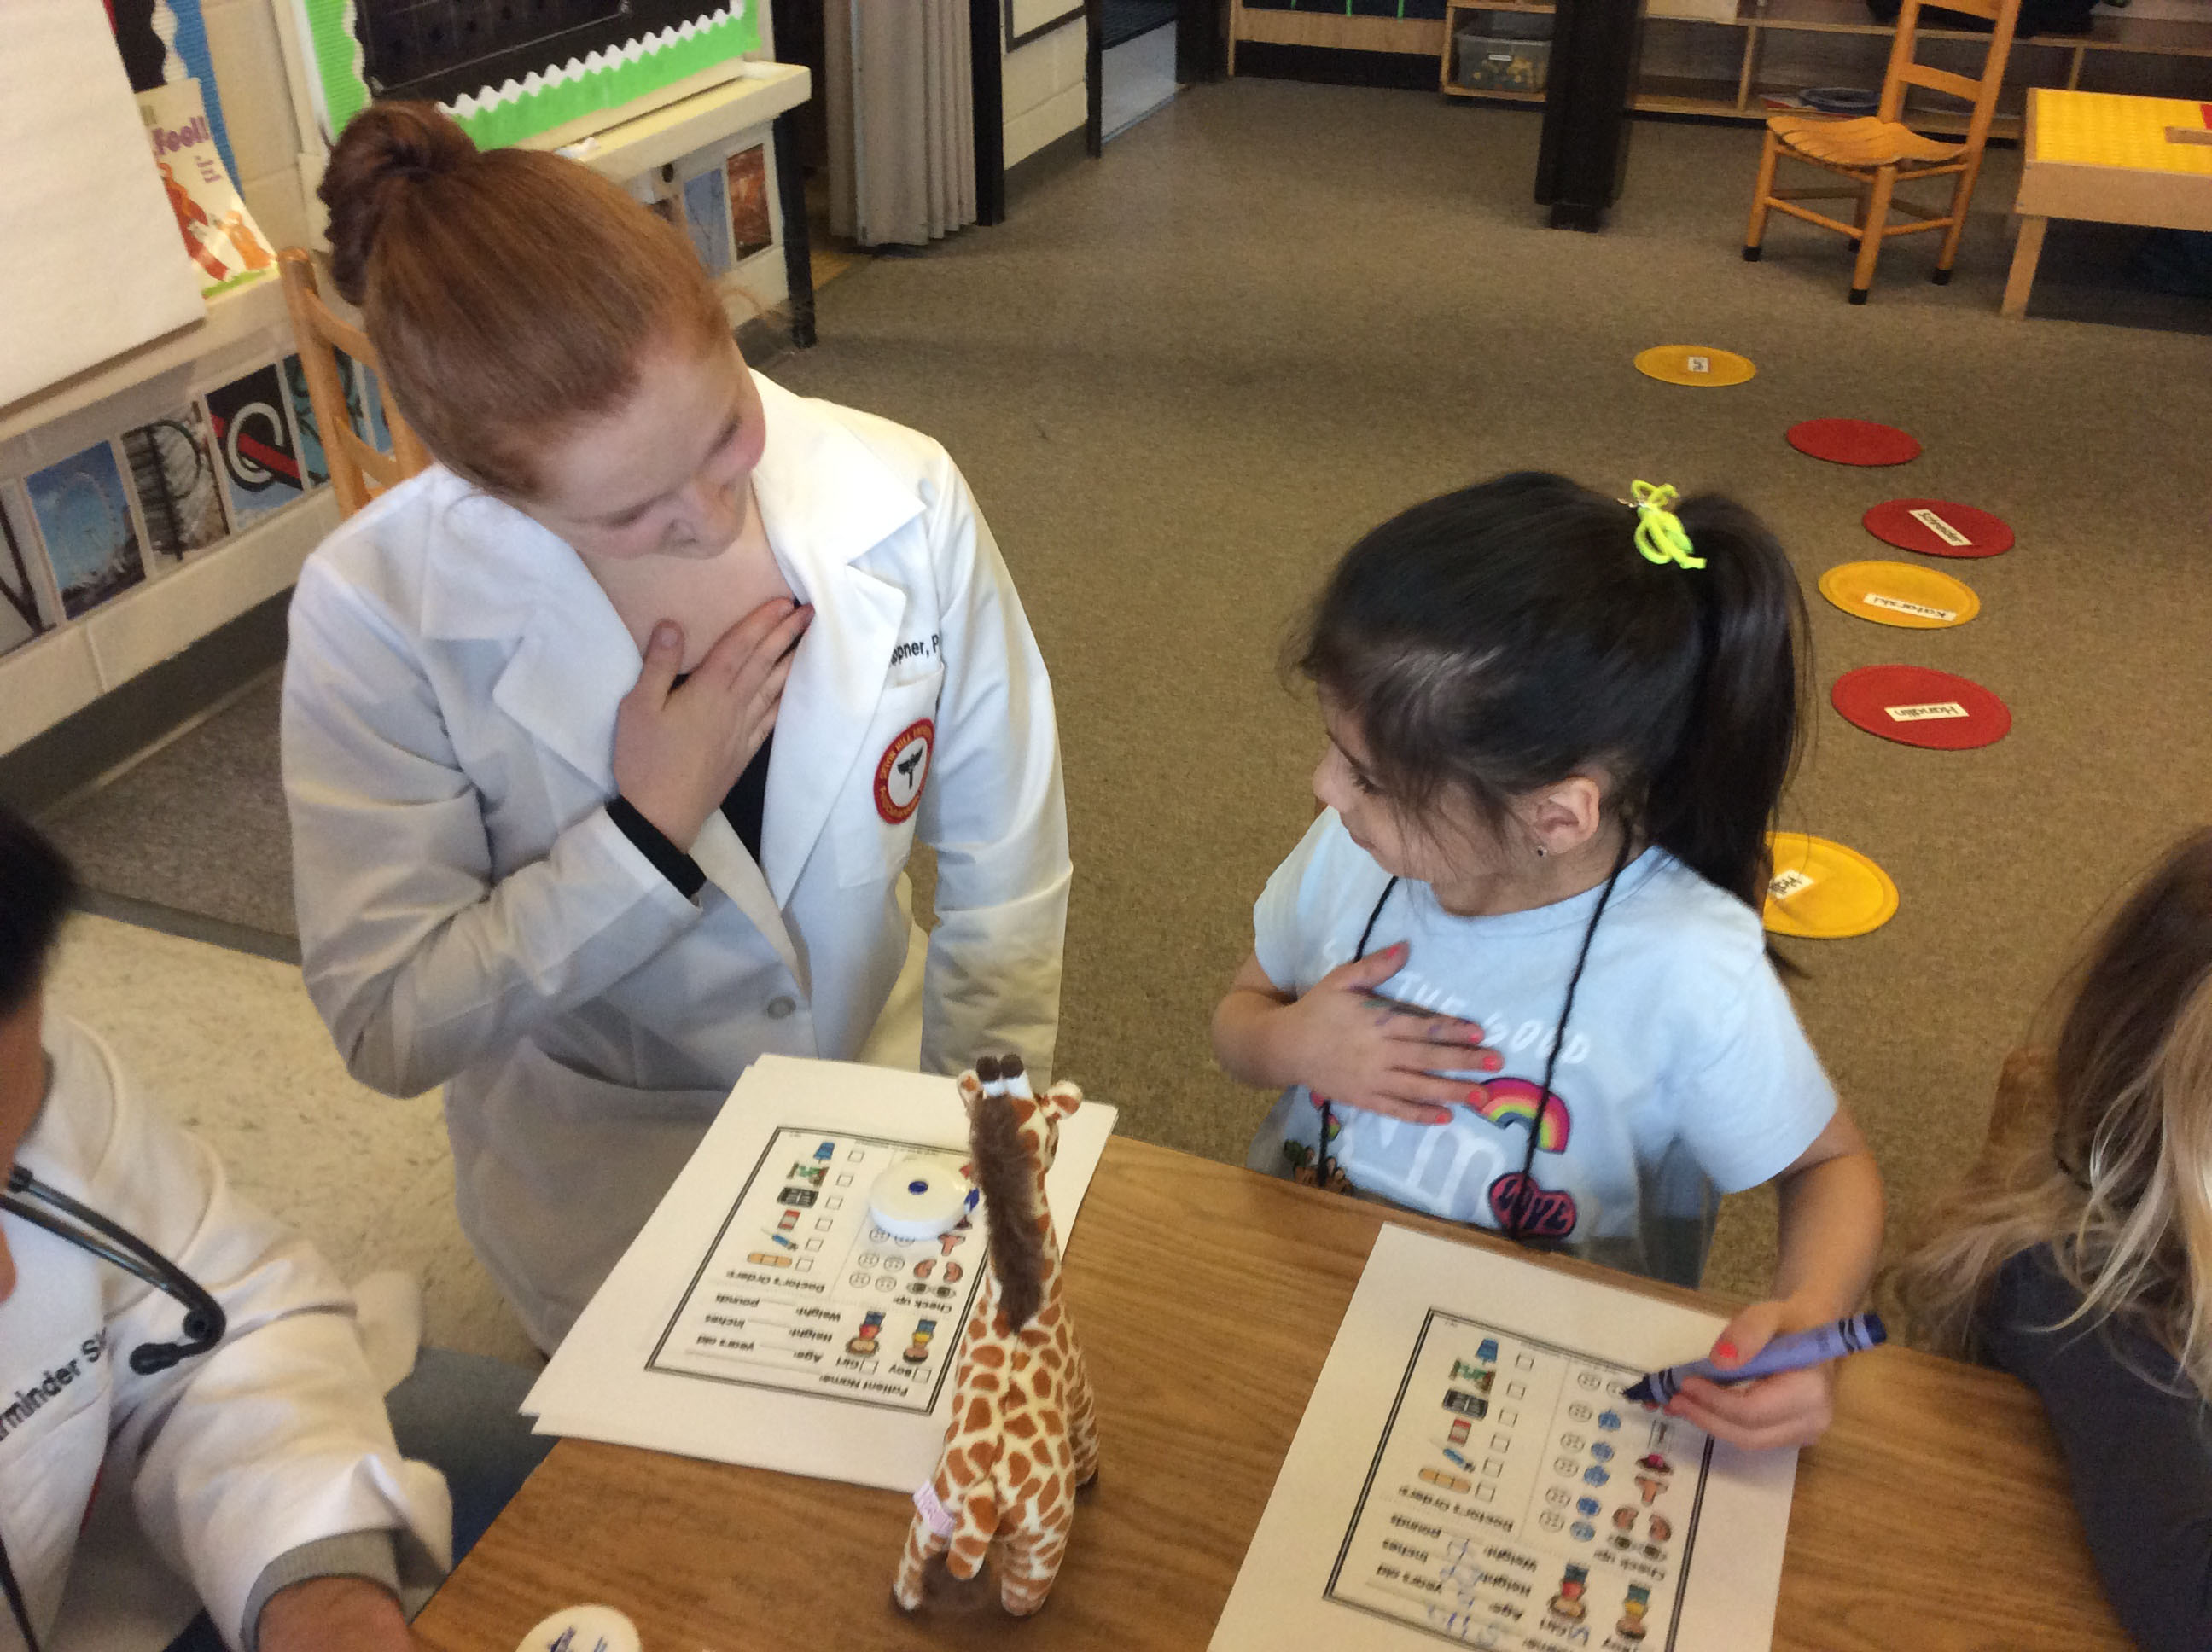 Physician Assistant graduate student with a student at Seton Hill's Child Development Center.